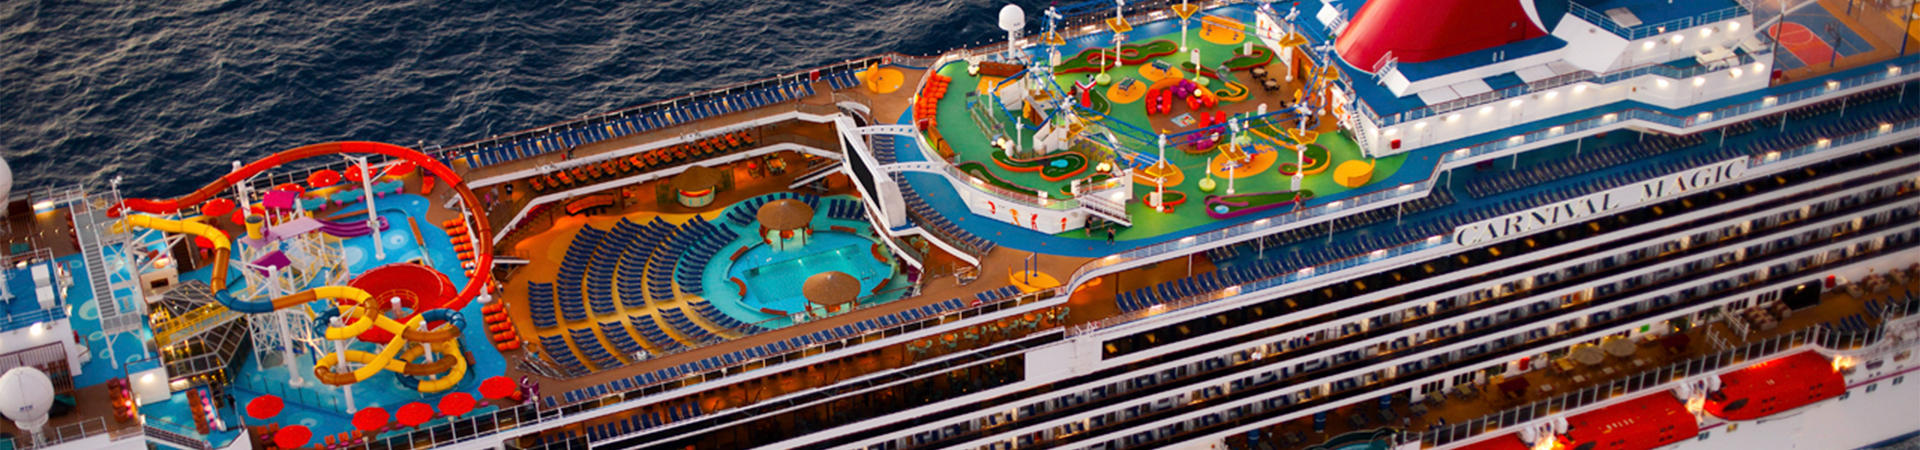 Choose Your Cruise Ship